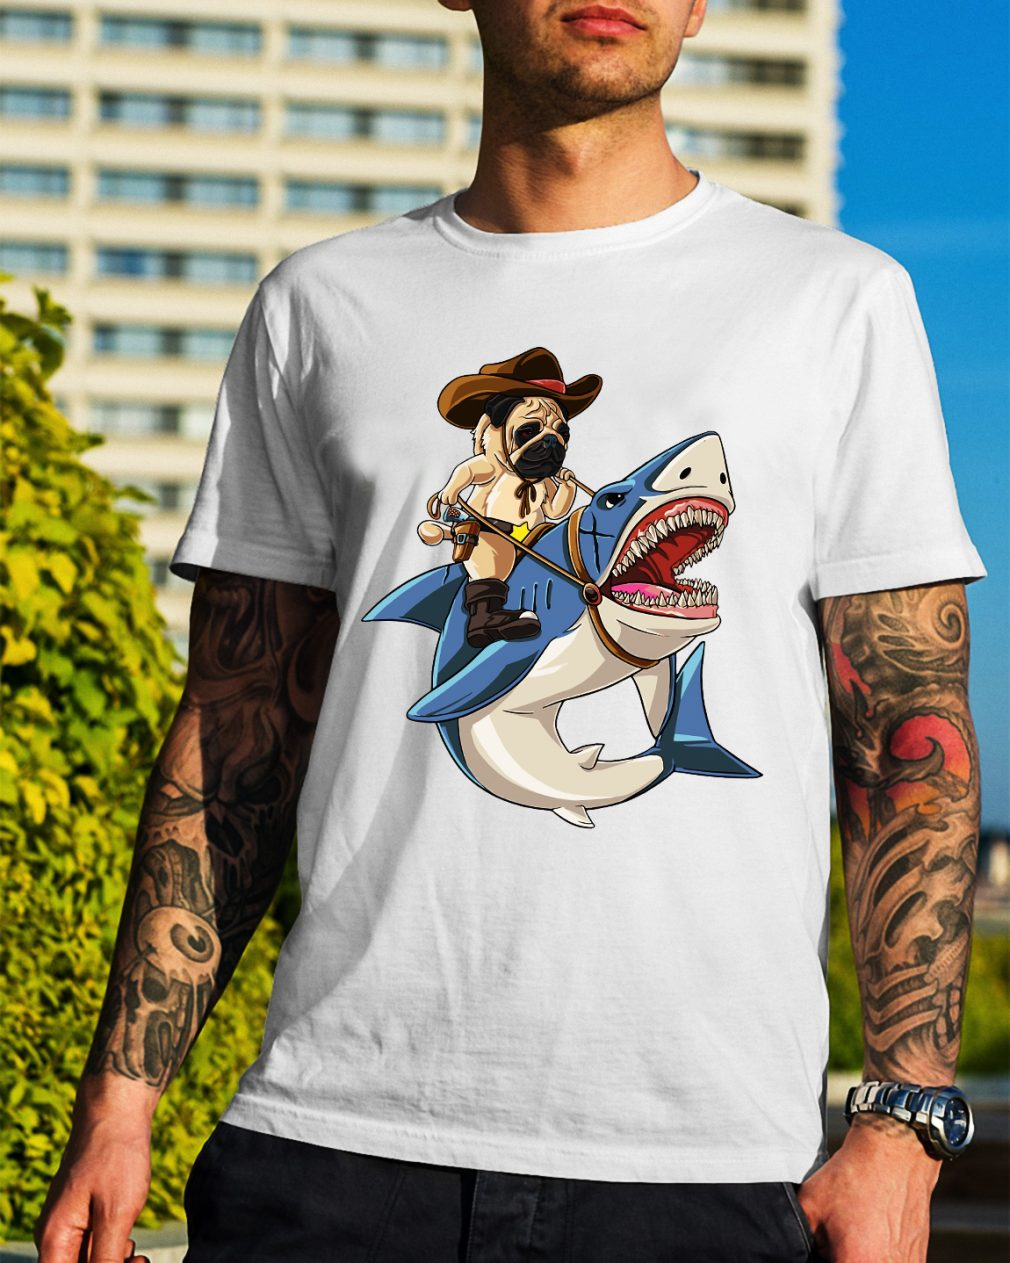 Bulldog riding shark shirt